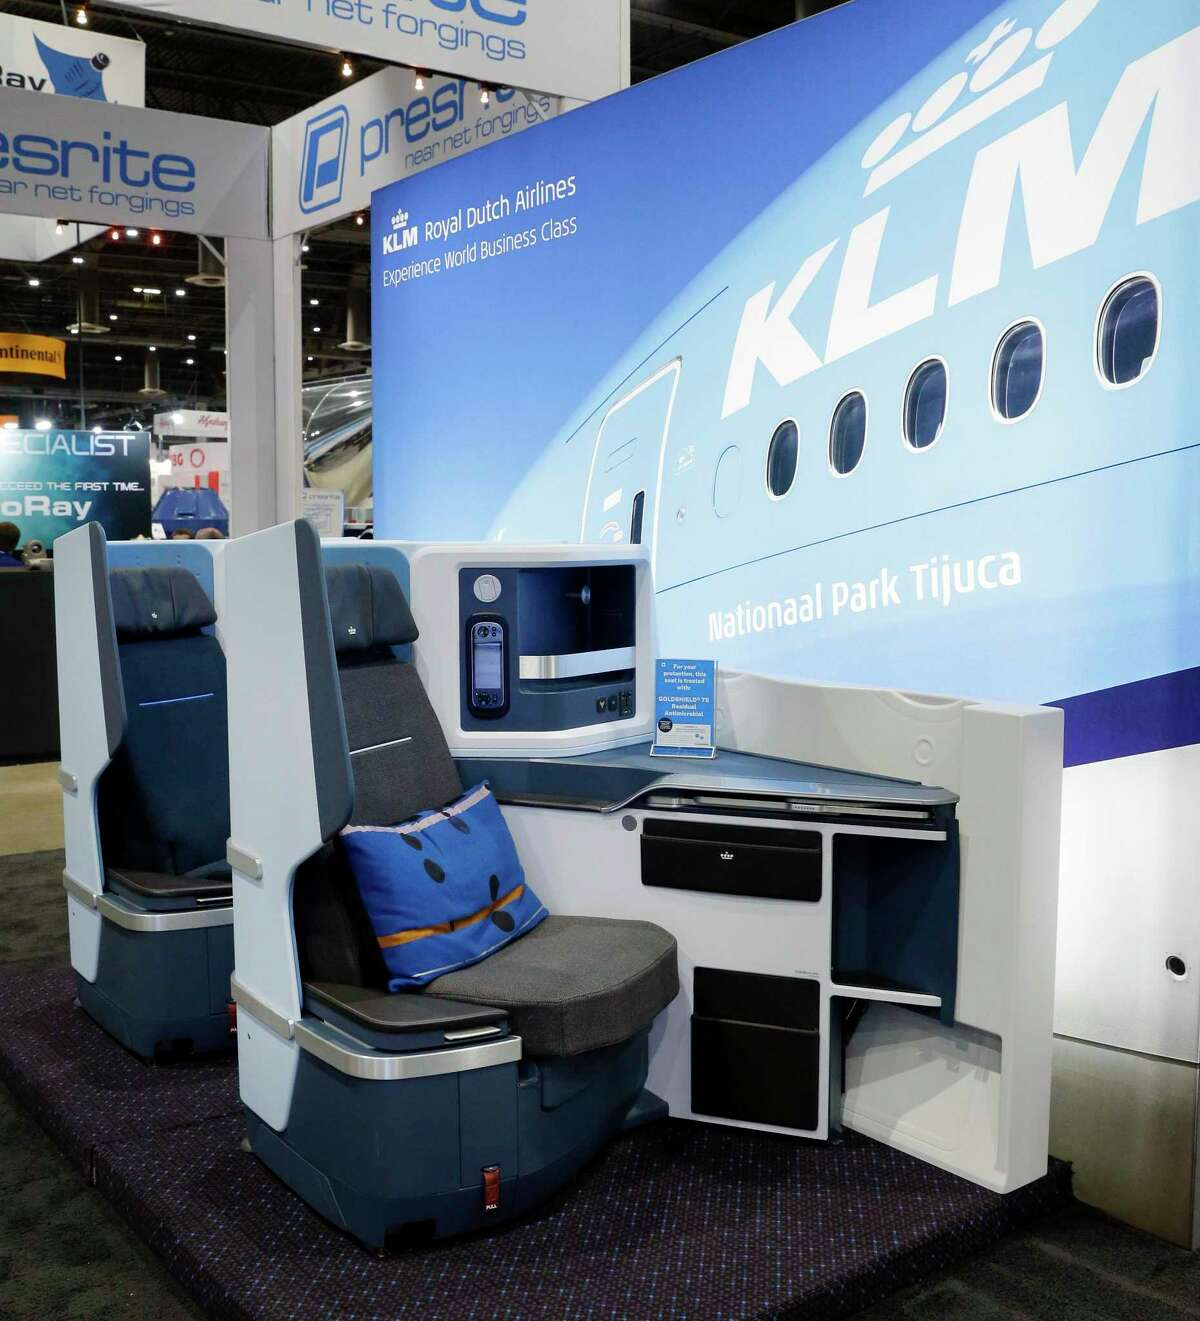 A mock up of business class seating at the KLM Airlines booth during day 1 of the Offshore Technology Conference, held at the NRG Center Monday, Aug. 16, 2021 in Houston, TX.